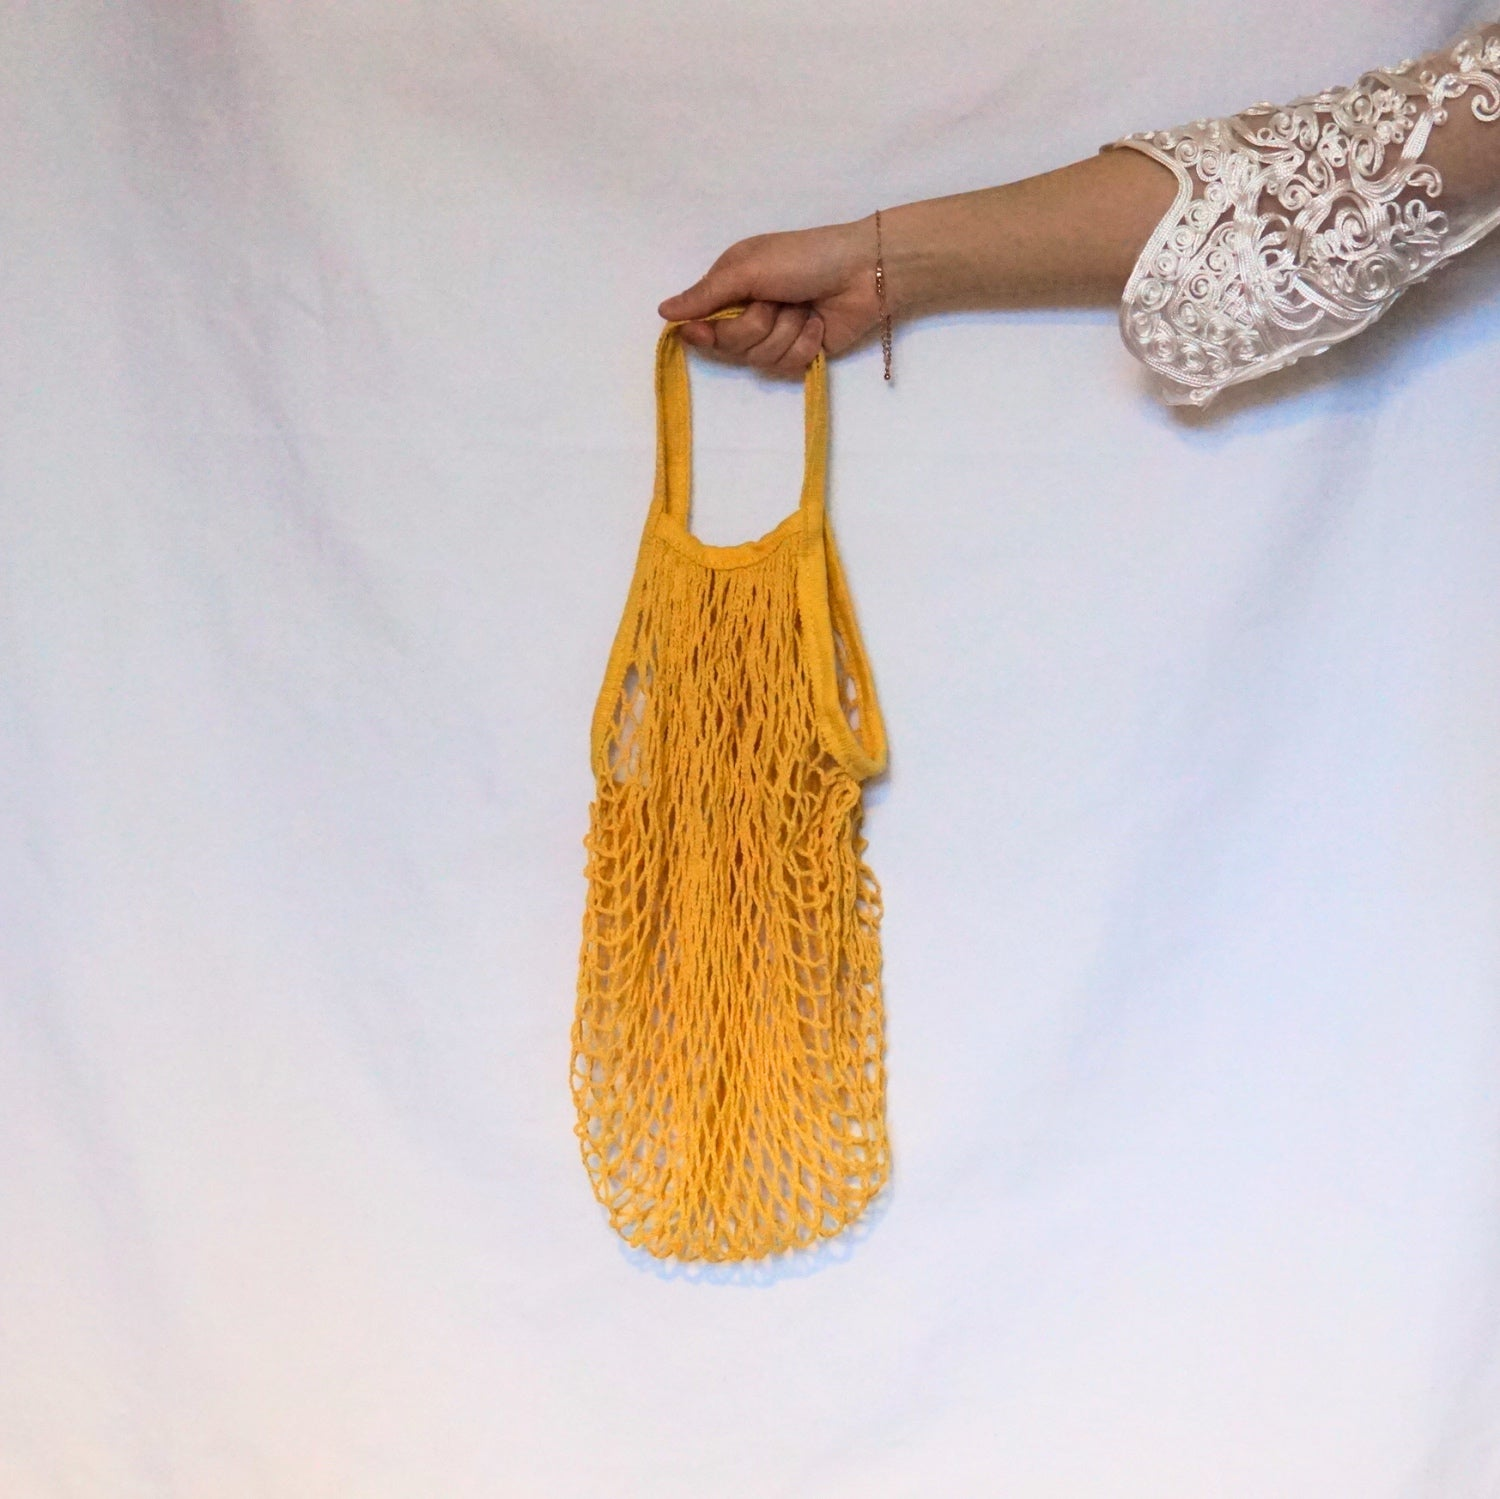 lena beach bag, net bag yellow with short handle